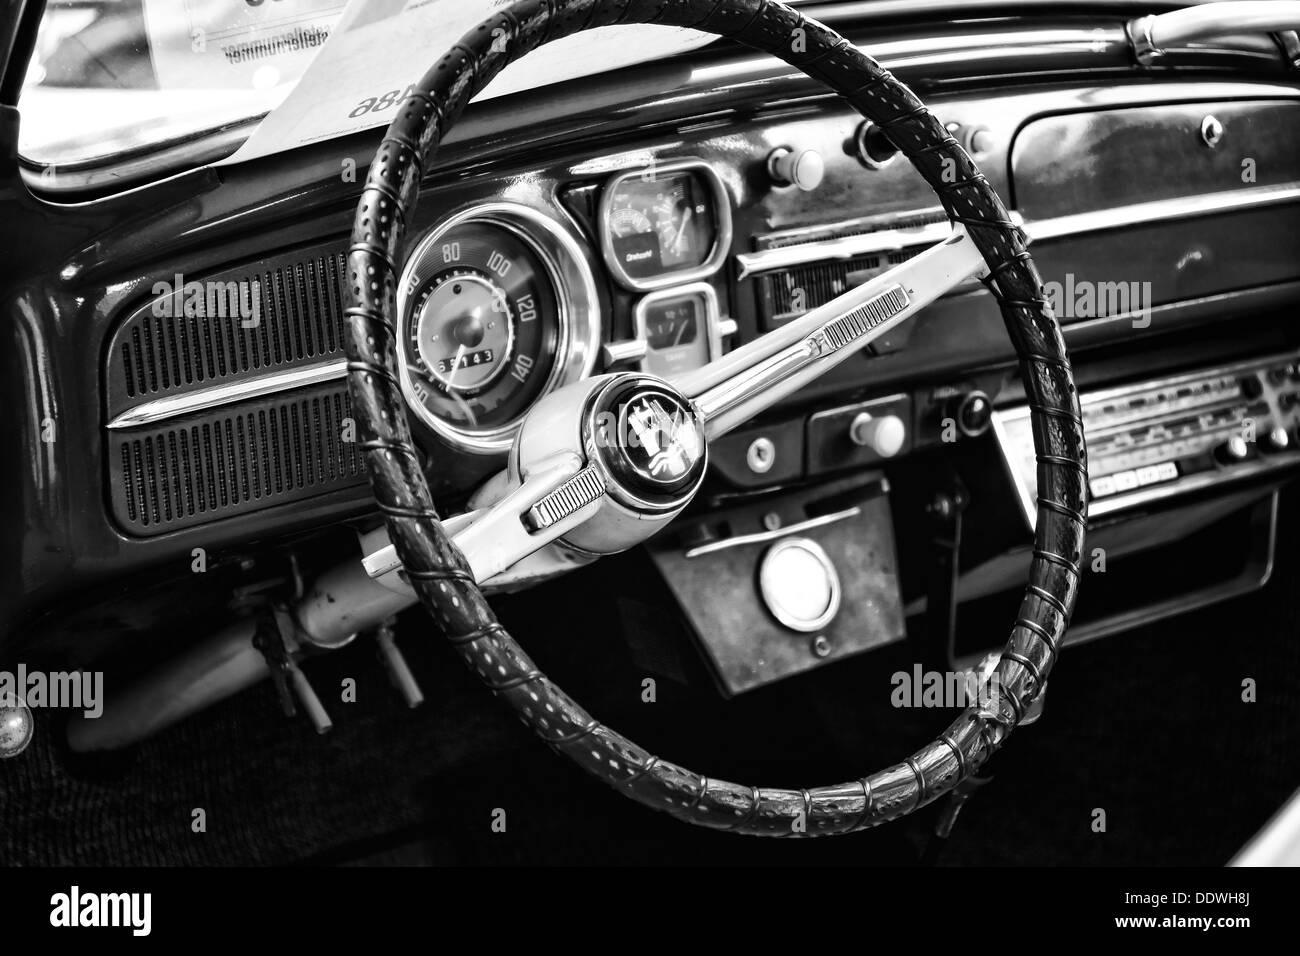 Cab subcompact Volkswagen Beetle (black and white) - Stock Image